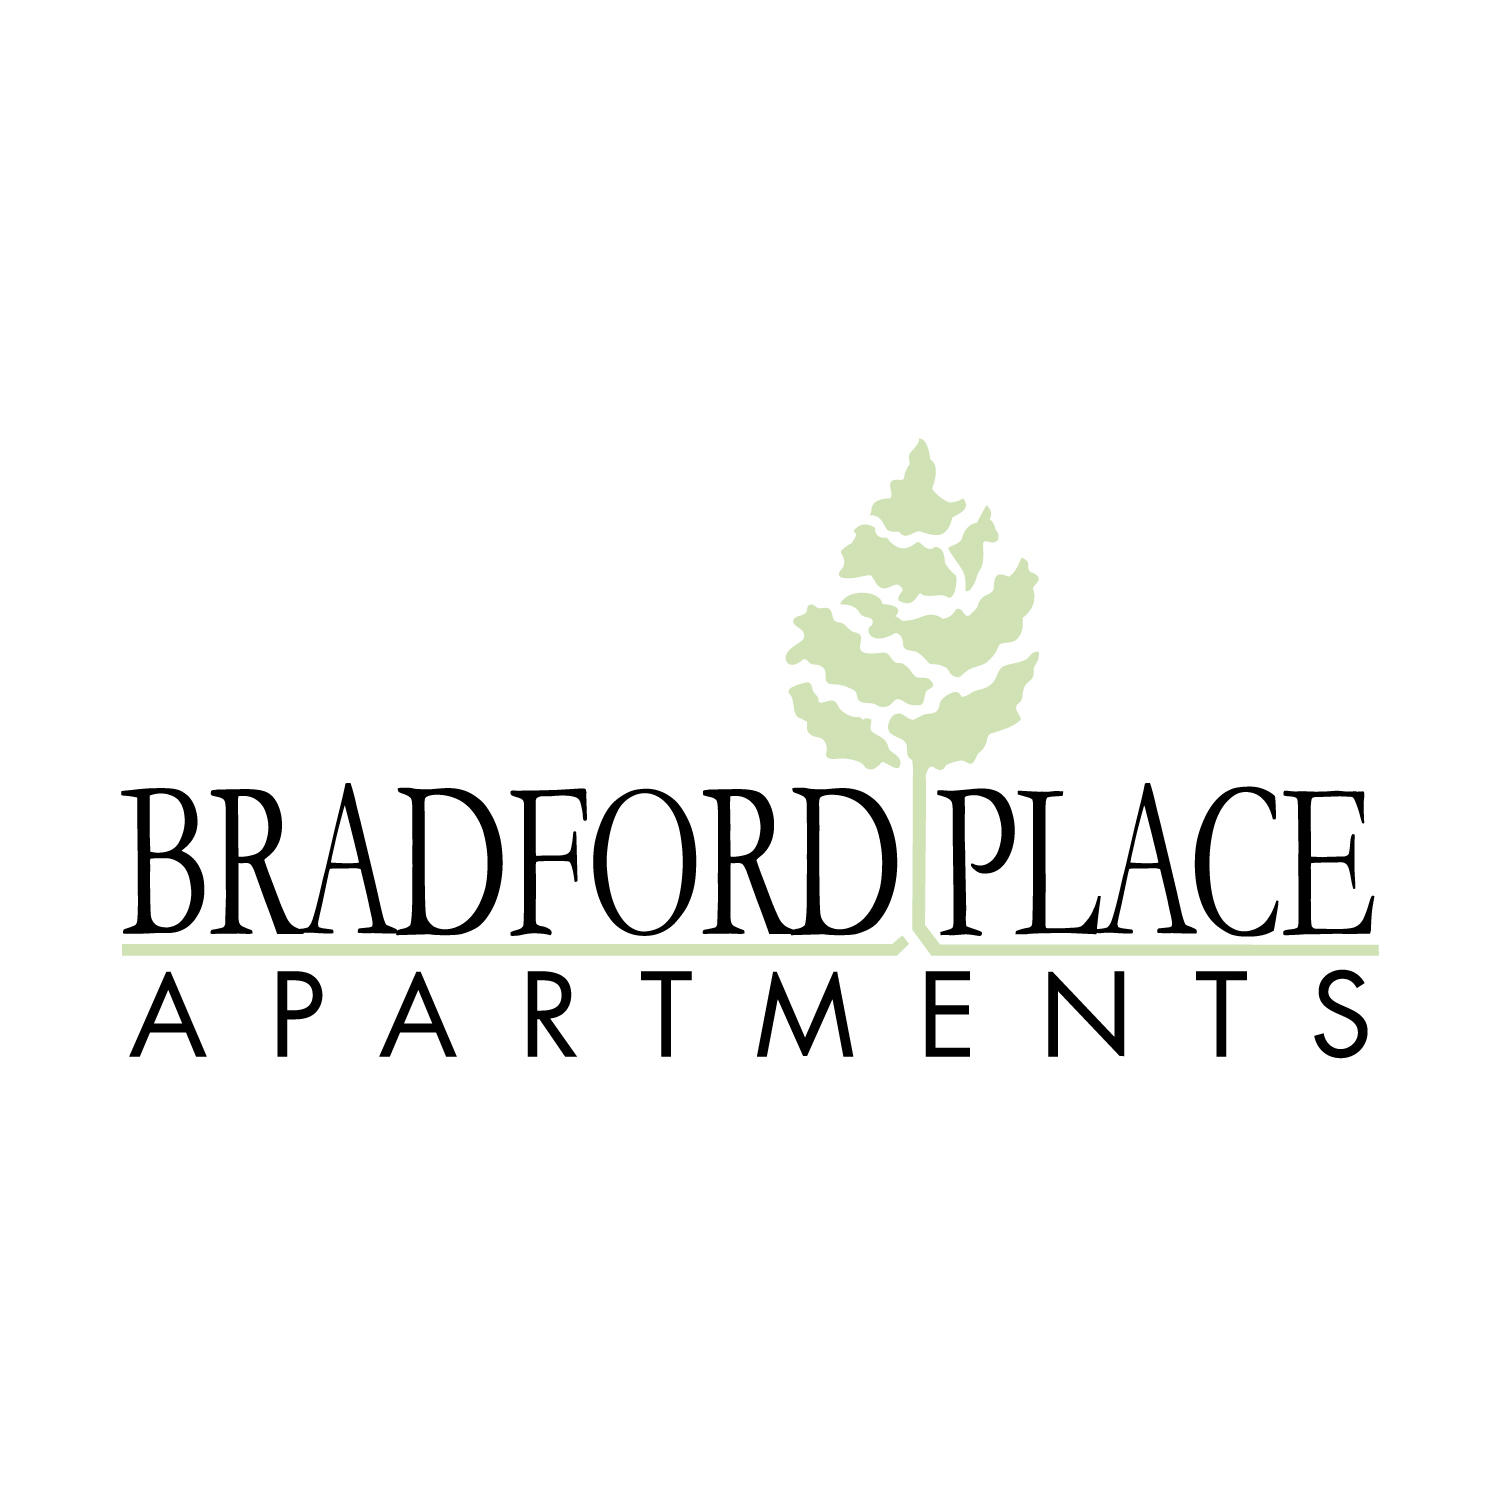 Bradford Place Apartments image 10